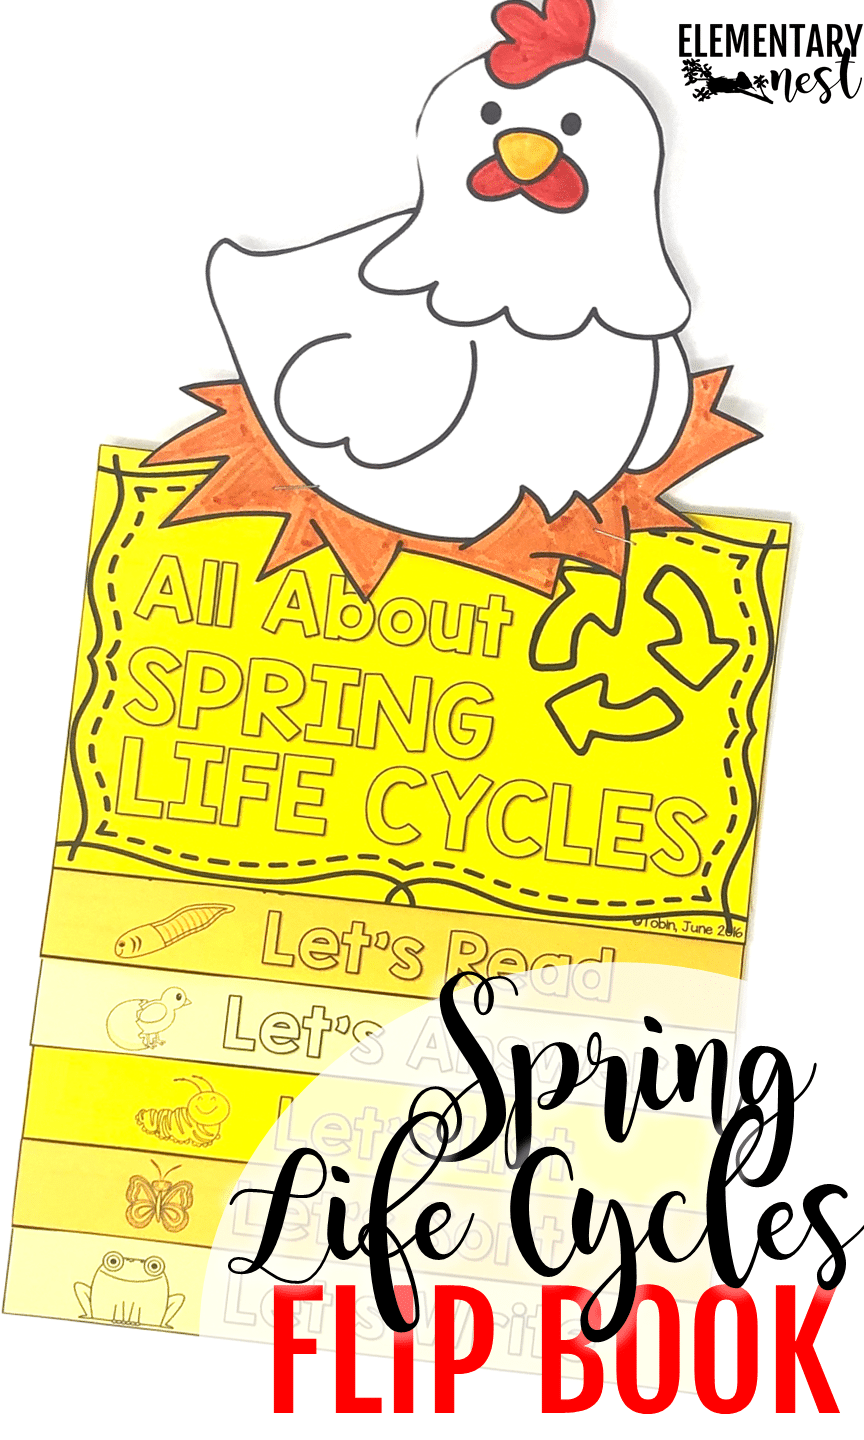 Spring life cycles flip book that teaches students about chicken, butterfly, and frog life cycles that occur in the spring.